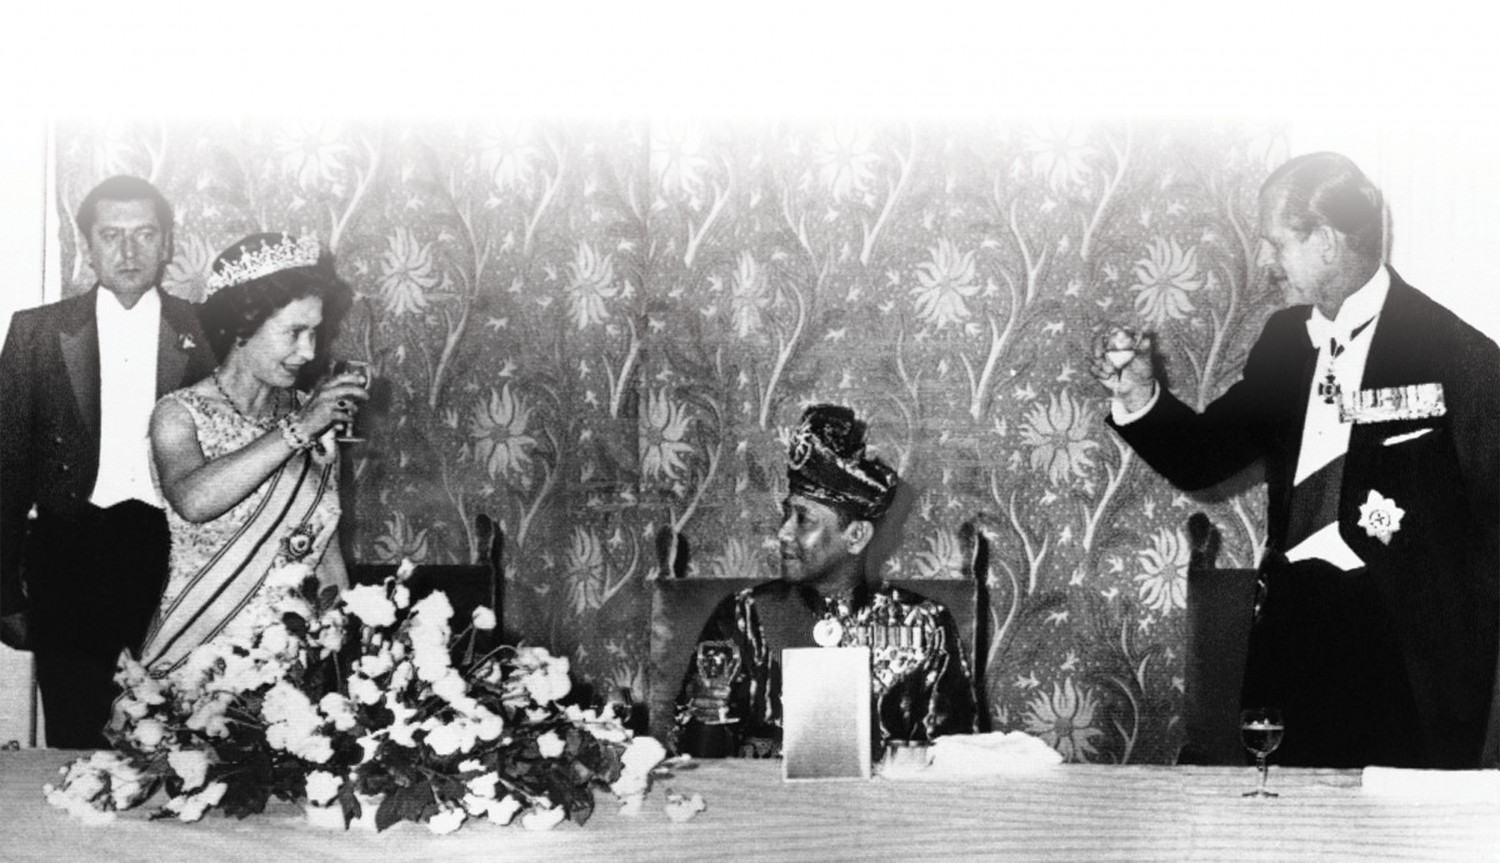 1974: Queen Elizabeth II of England and the Duke of Edinburgh toast the King of Malaysia, seated between them in evening on Thursday, July 12, 1974, at Claridges in London. The dinner marked the third day of the King and Queen of Malaysia's visit to England